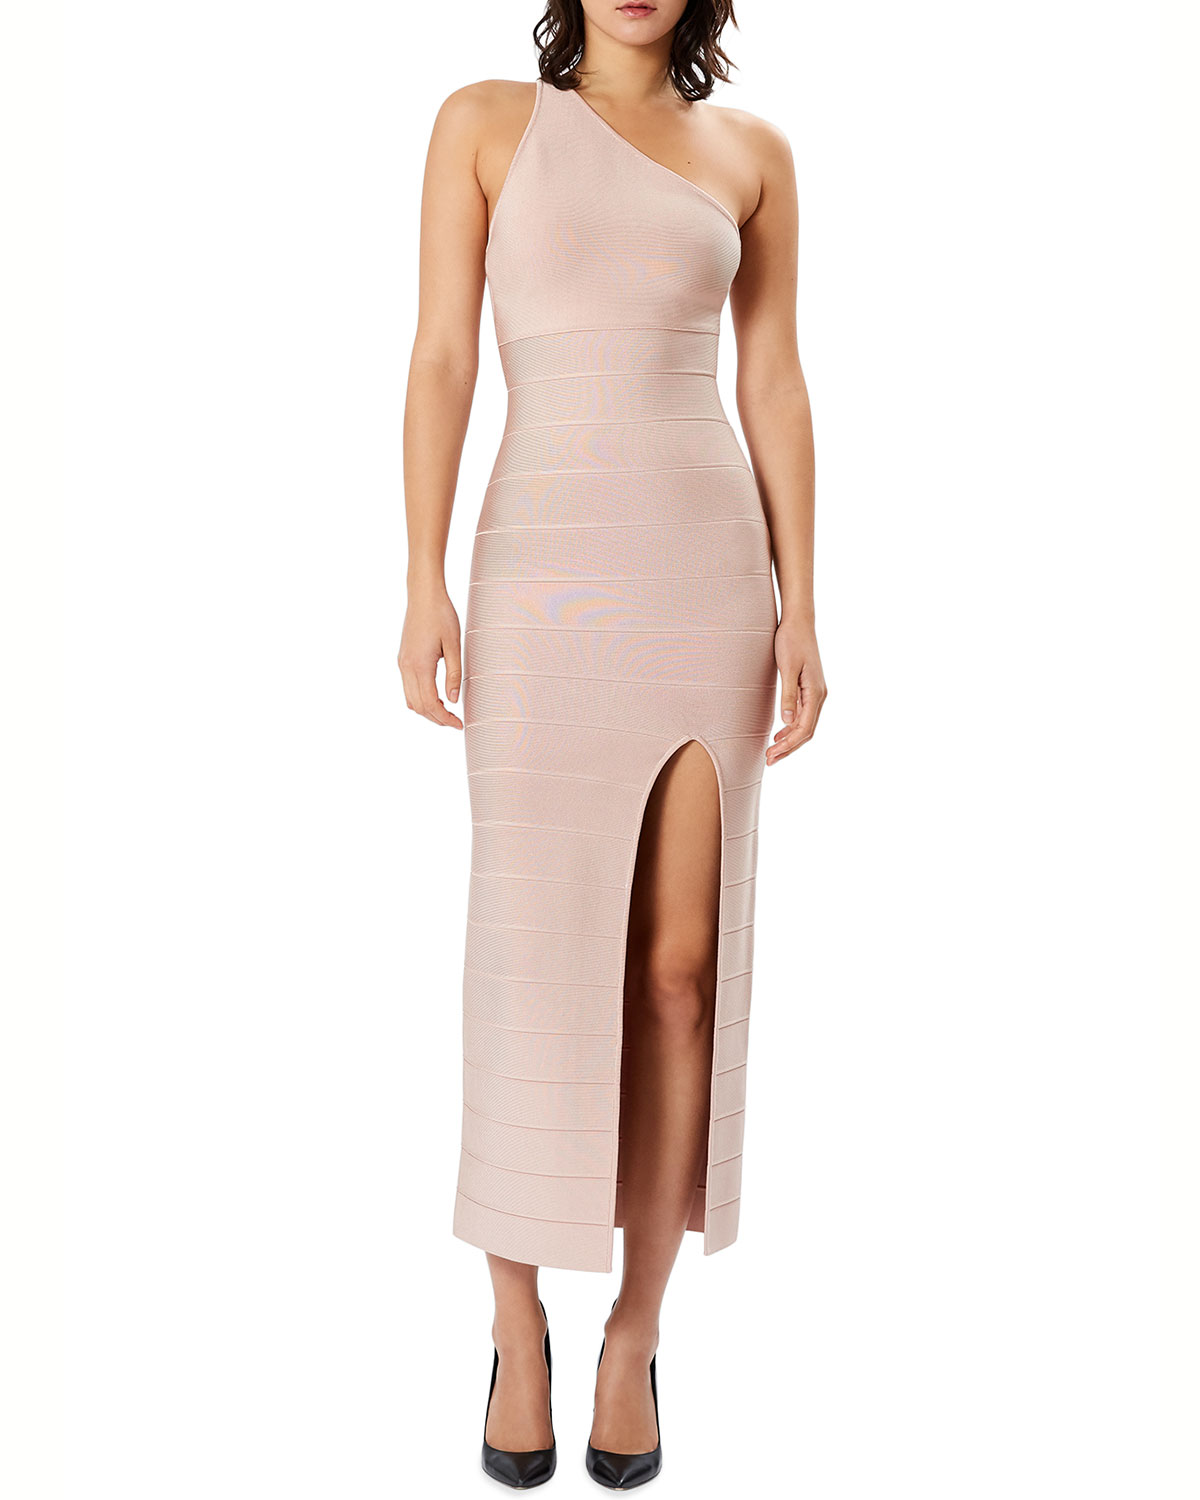 Icon One-Shoulder Midi Gown